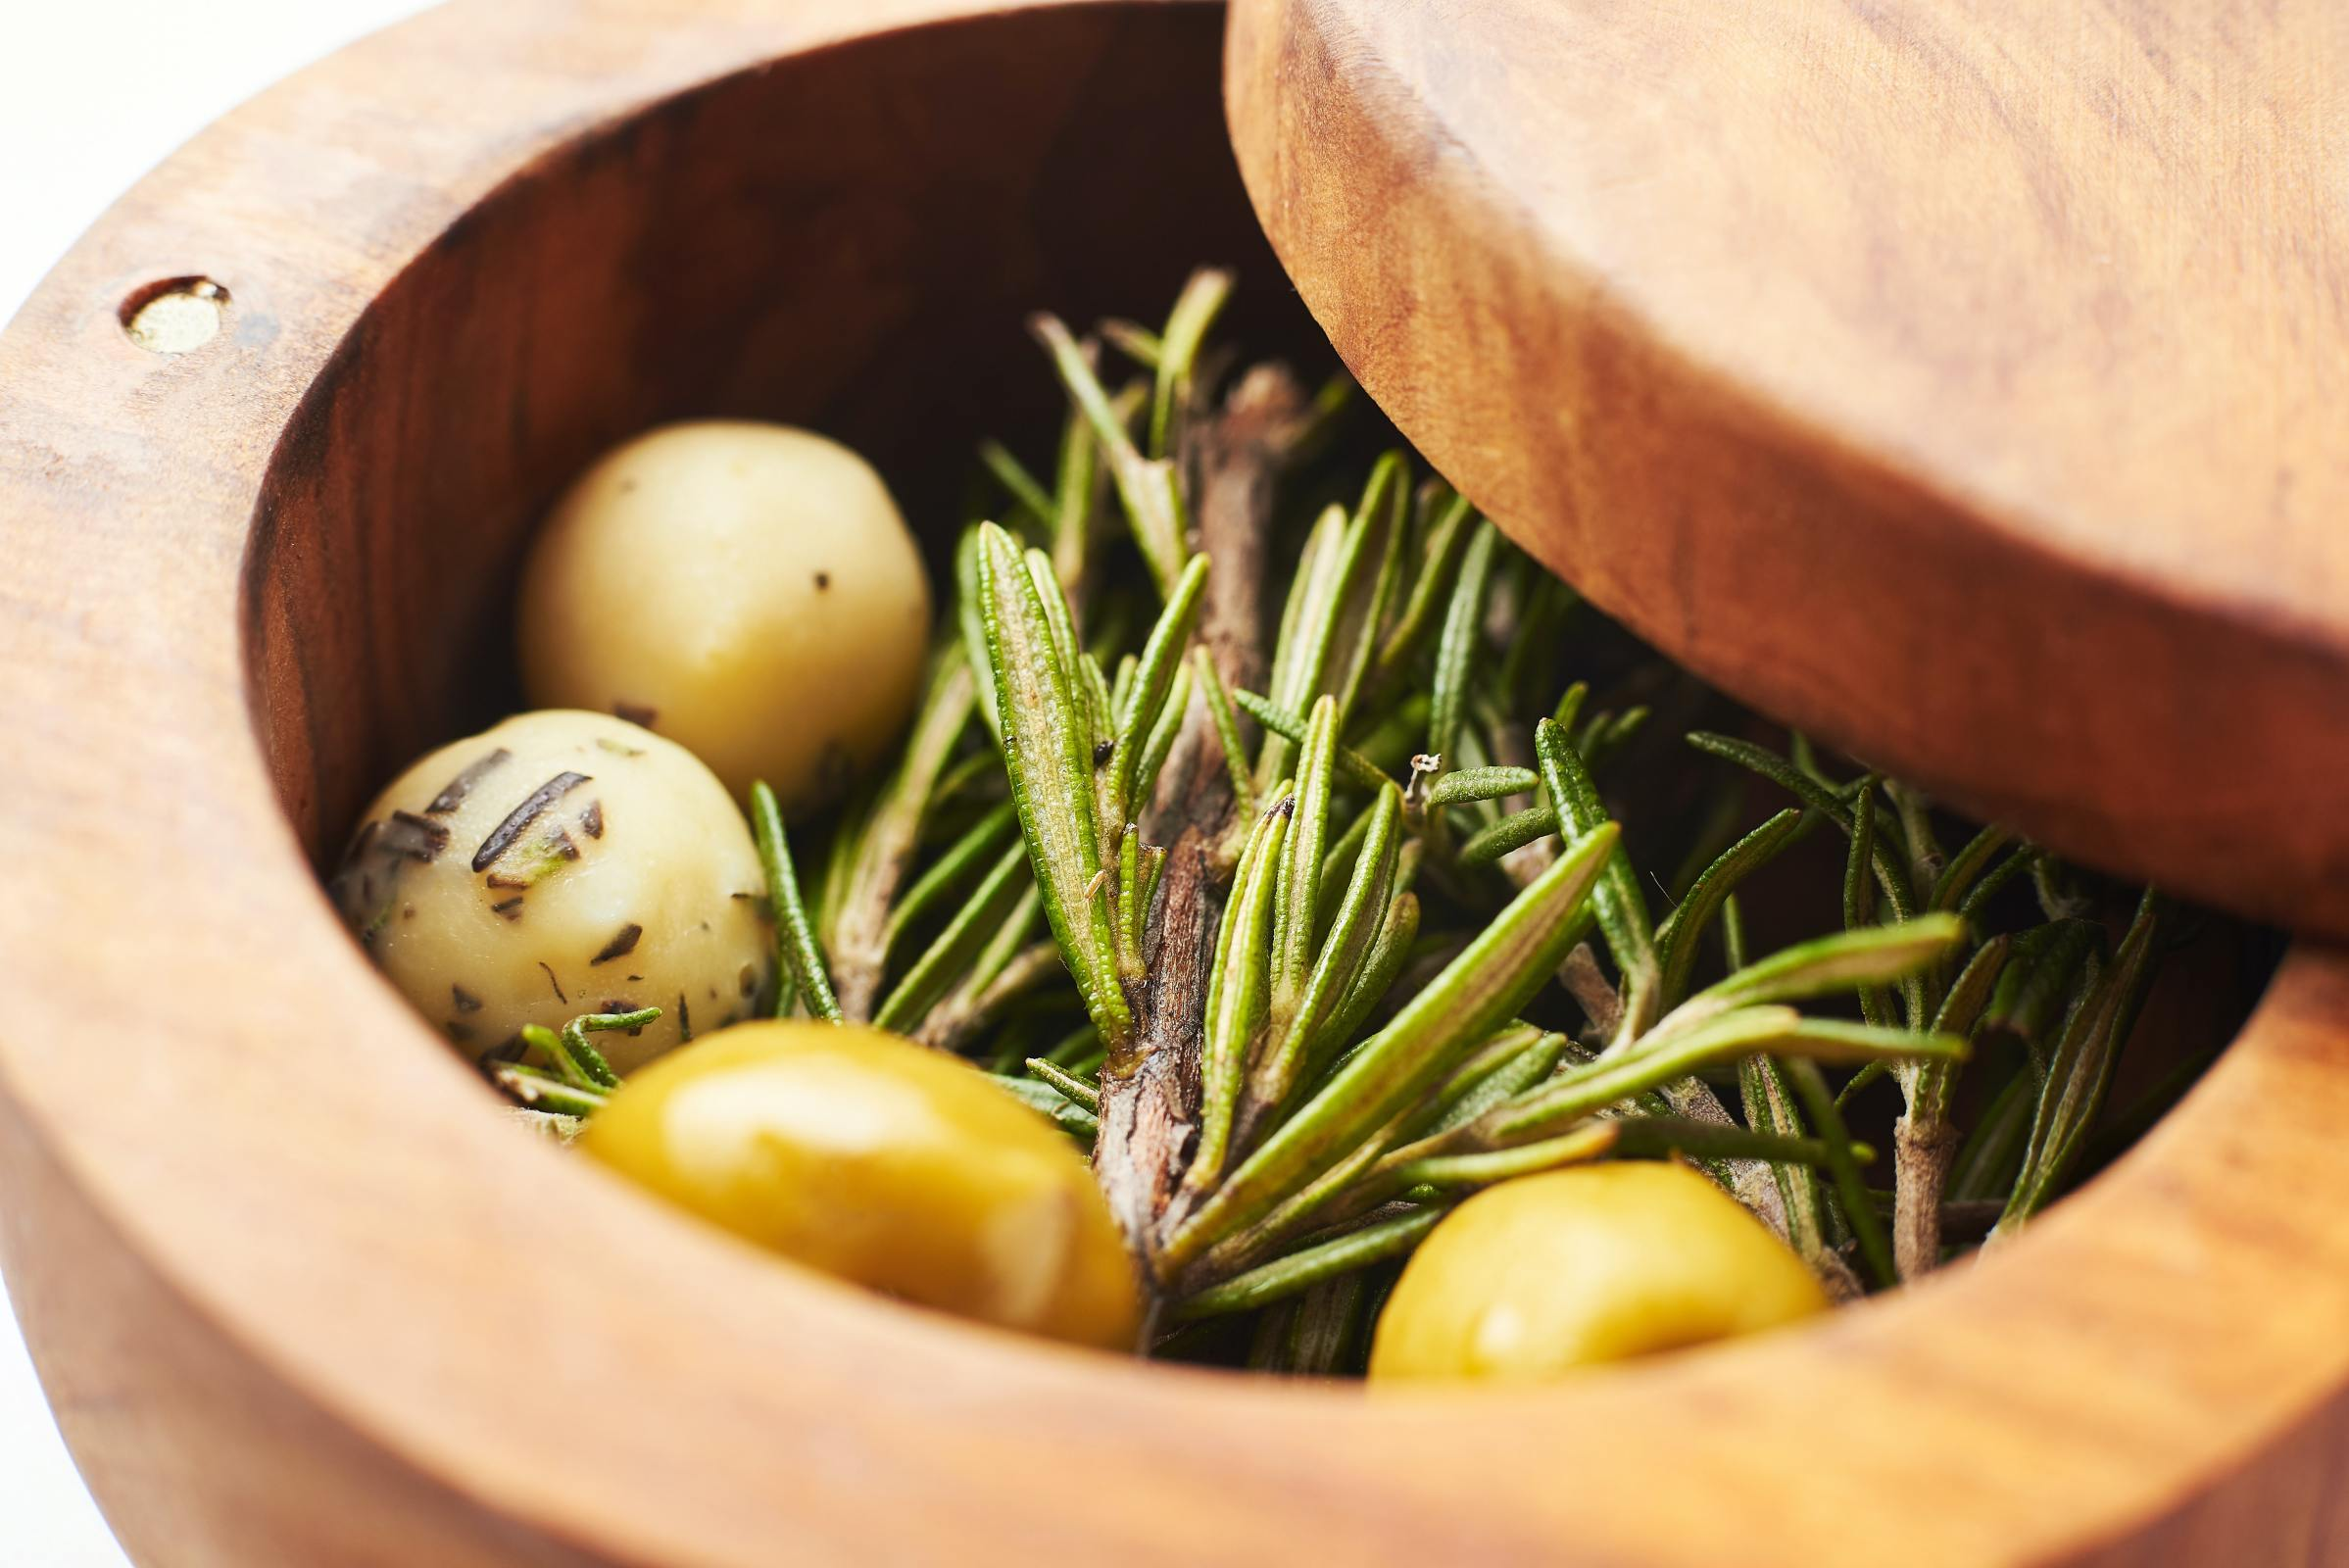 Olives and herbs in a wooden bowl